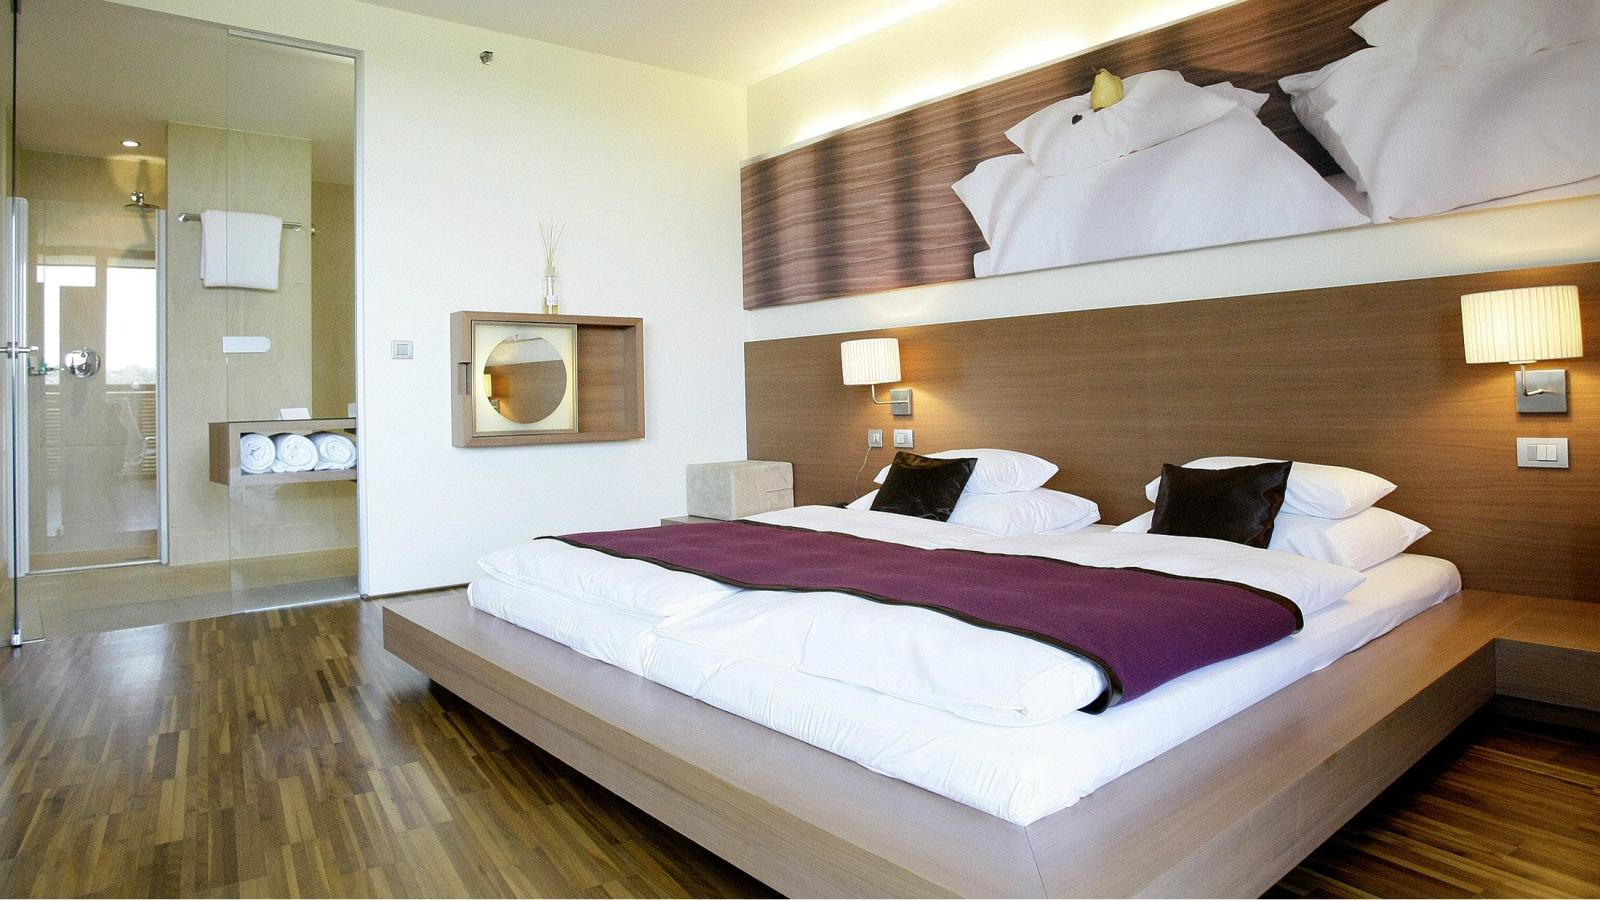 Hotel Room Hd Images